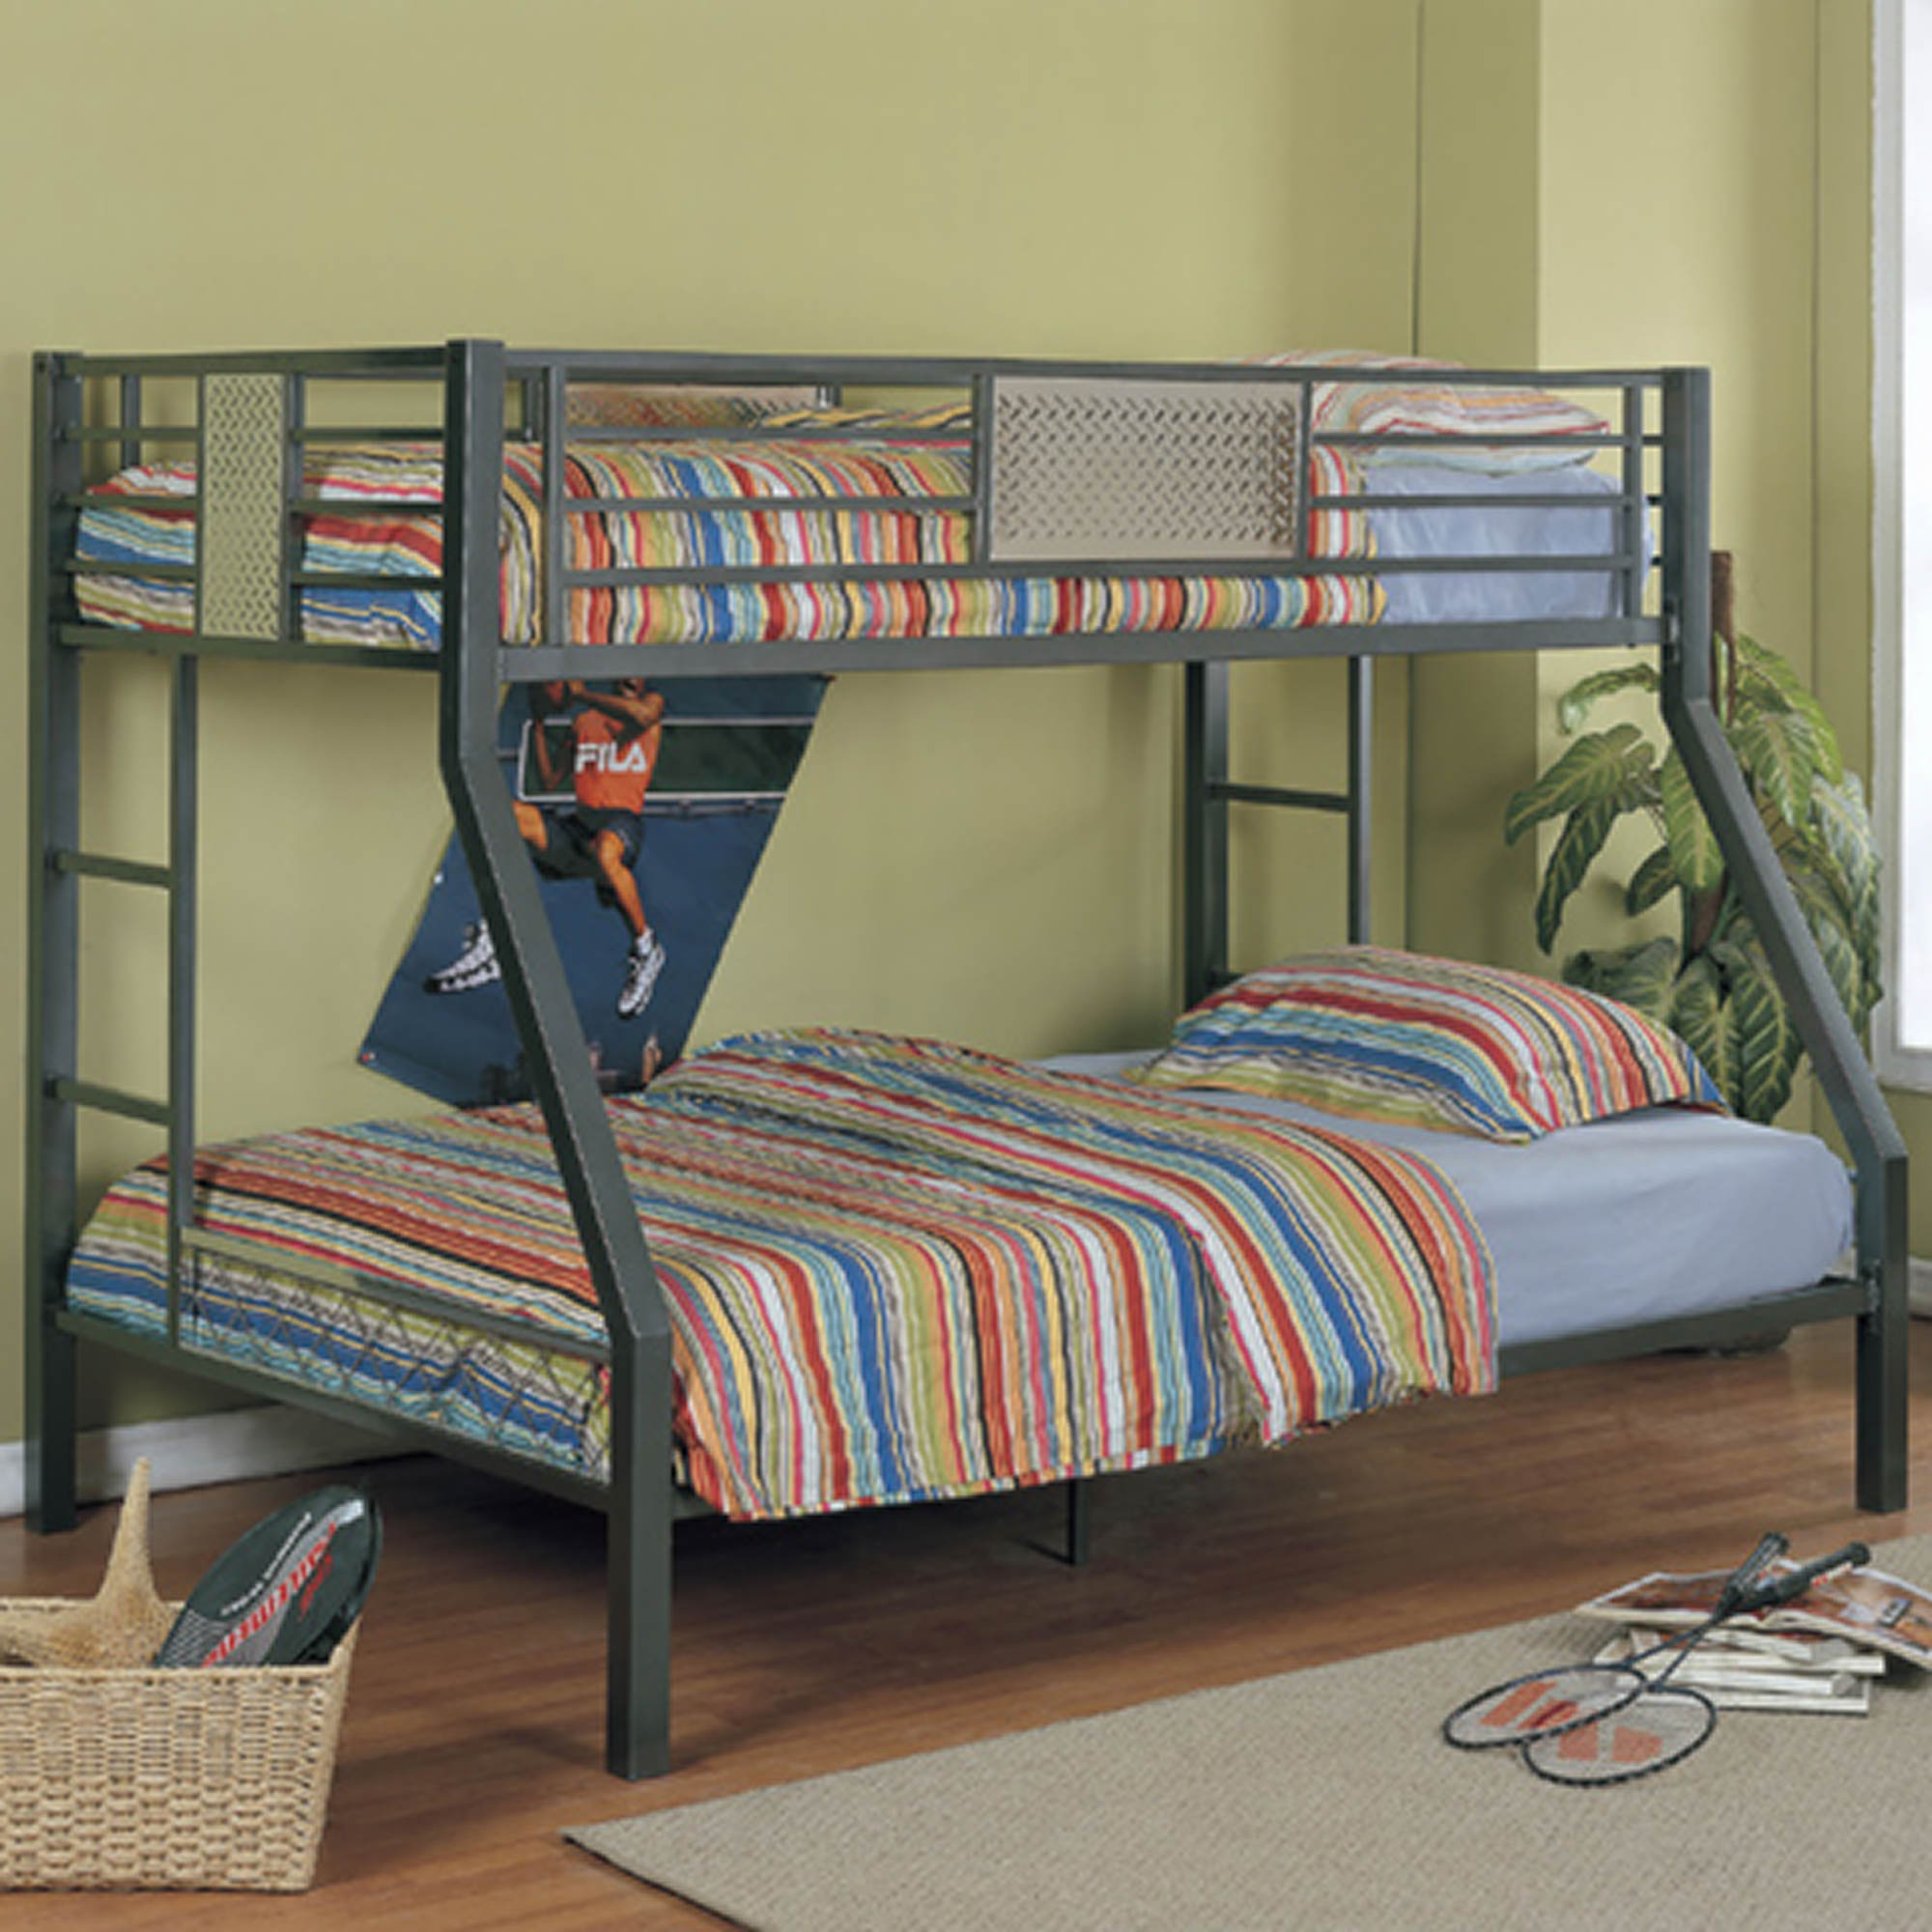 Powell Monster Bedroom Twin Full Size Bunk Beds Chrome